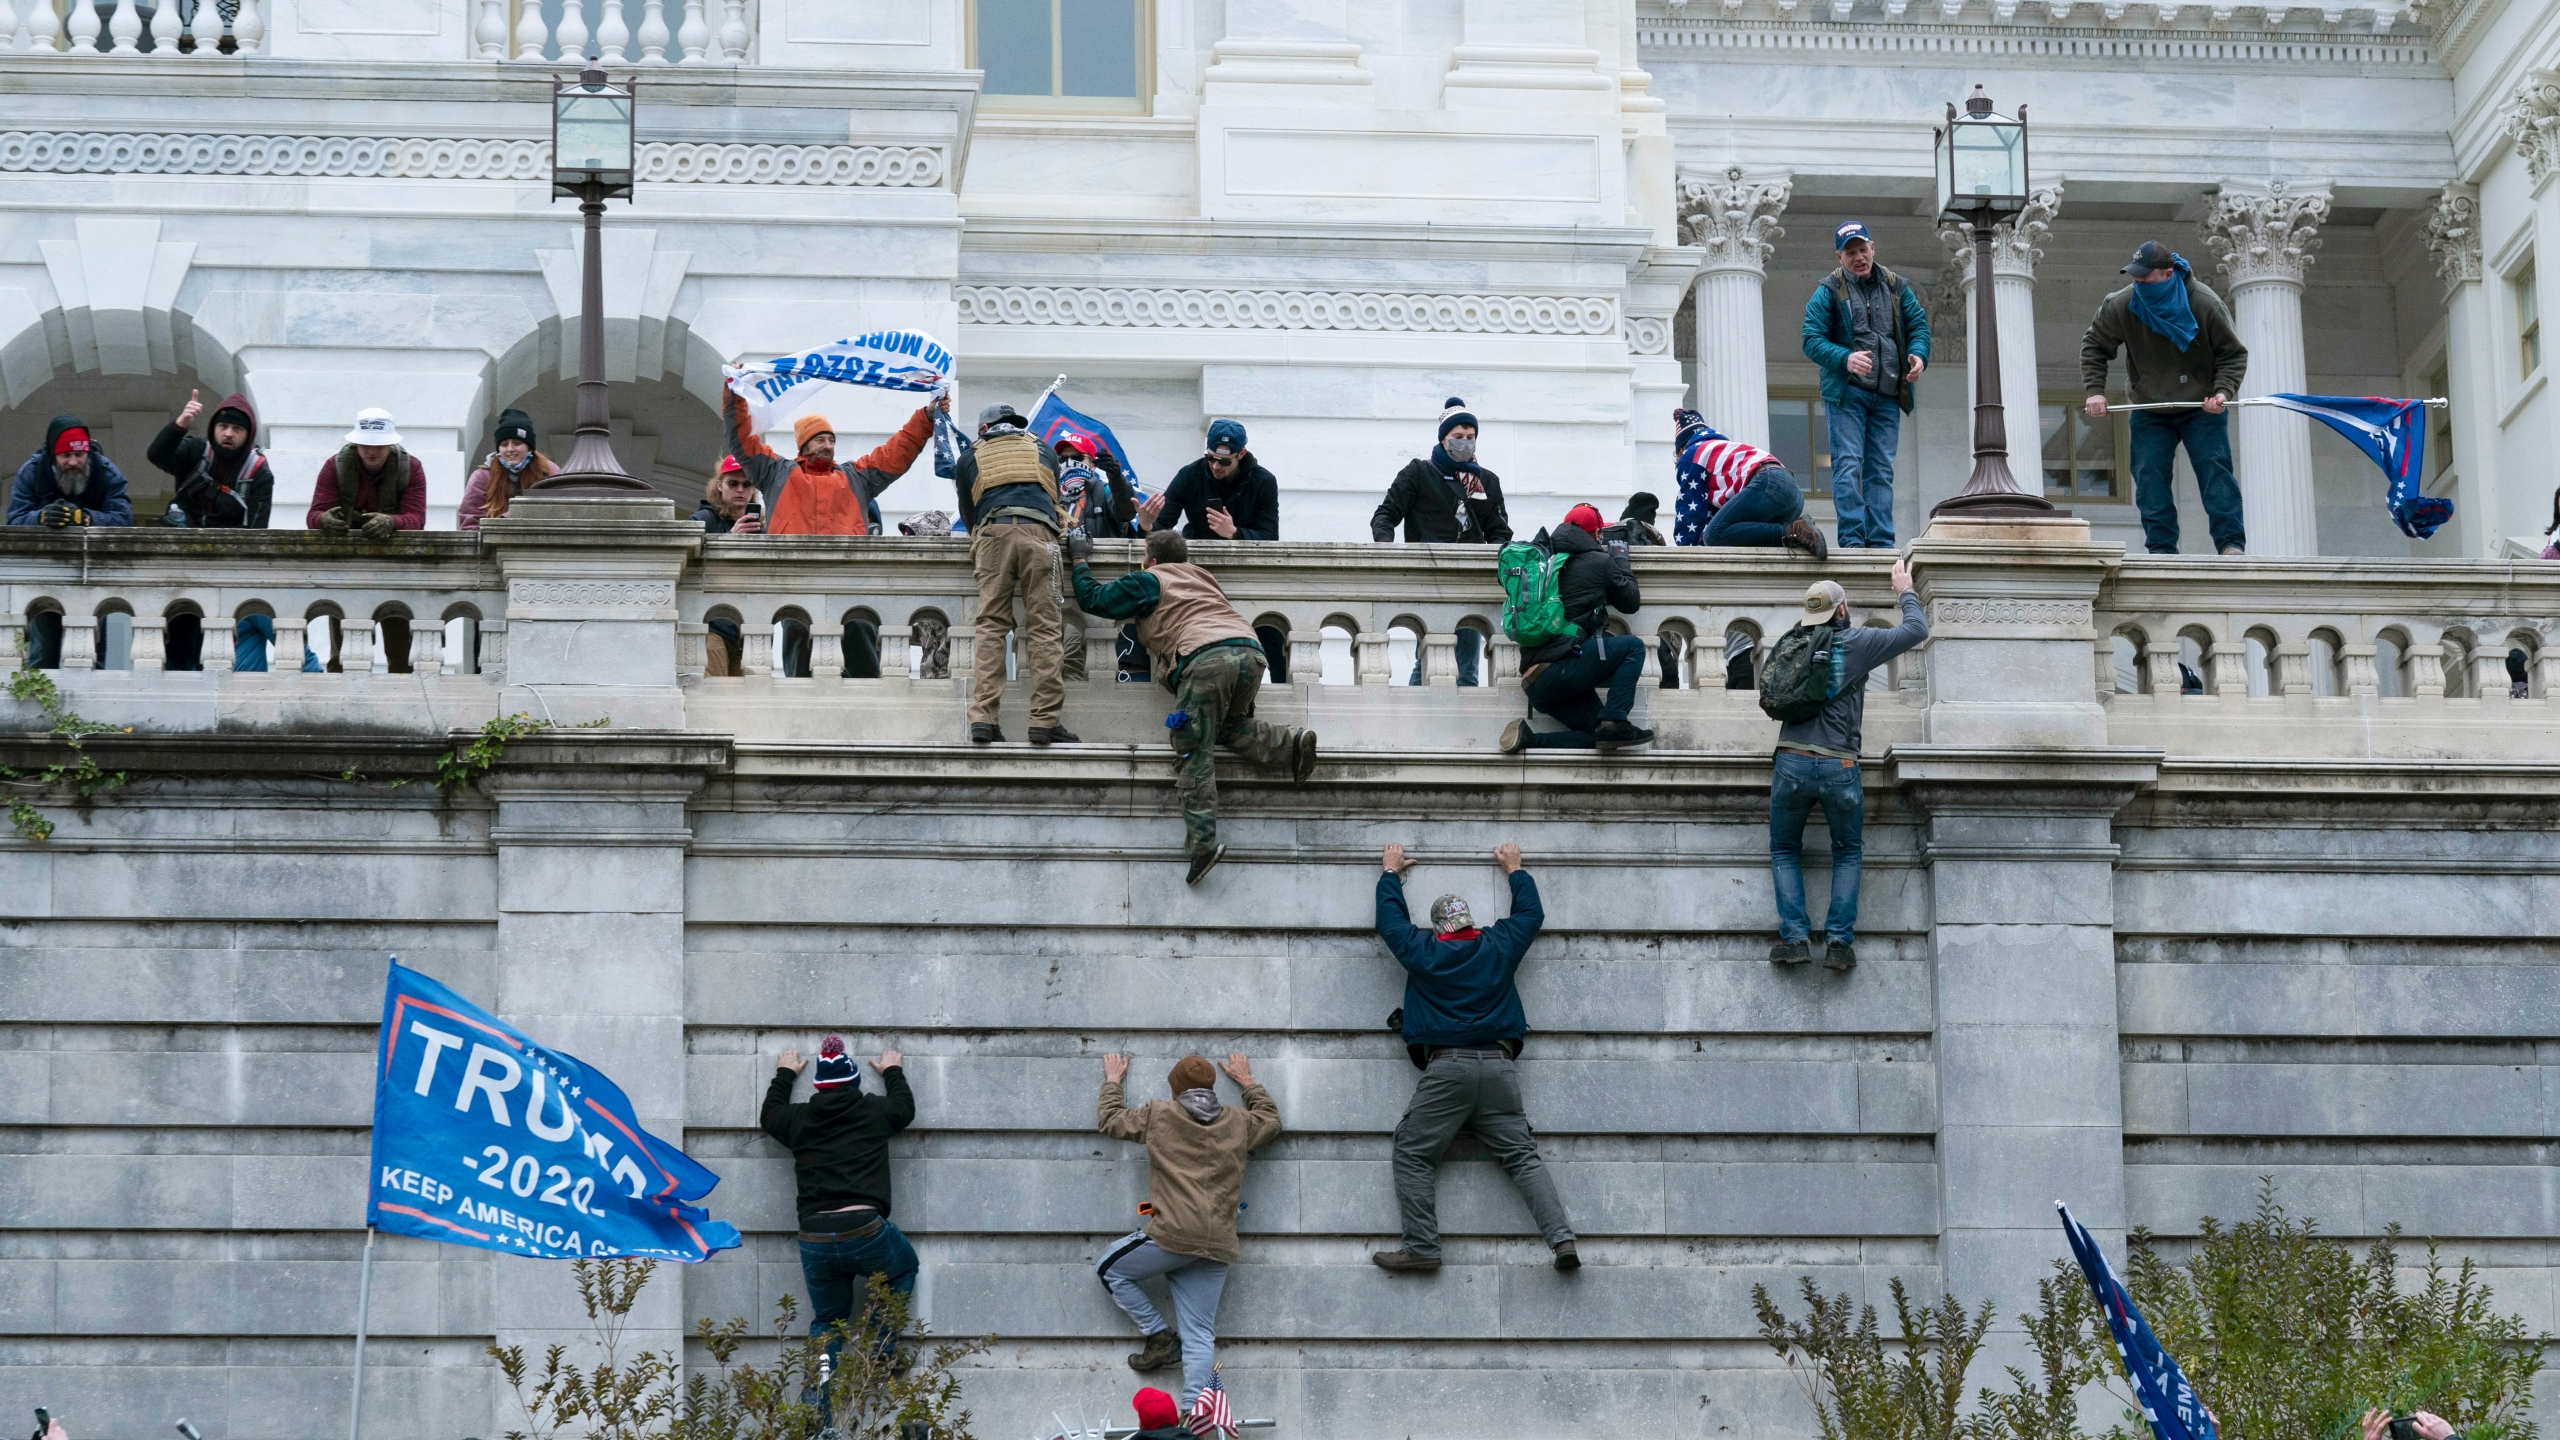 Supporters of Donald Trump climb the west wall of the the U.S. Capitol on Wednesday, Jan. 6, 2021, in Washington. (AP Photo/Jose Luis Magana)